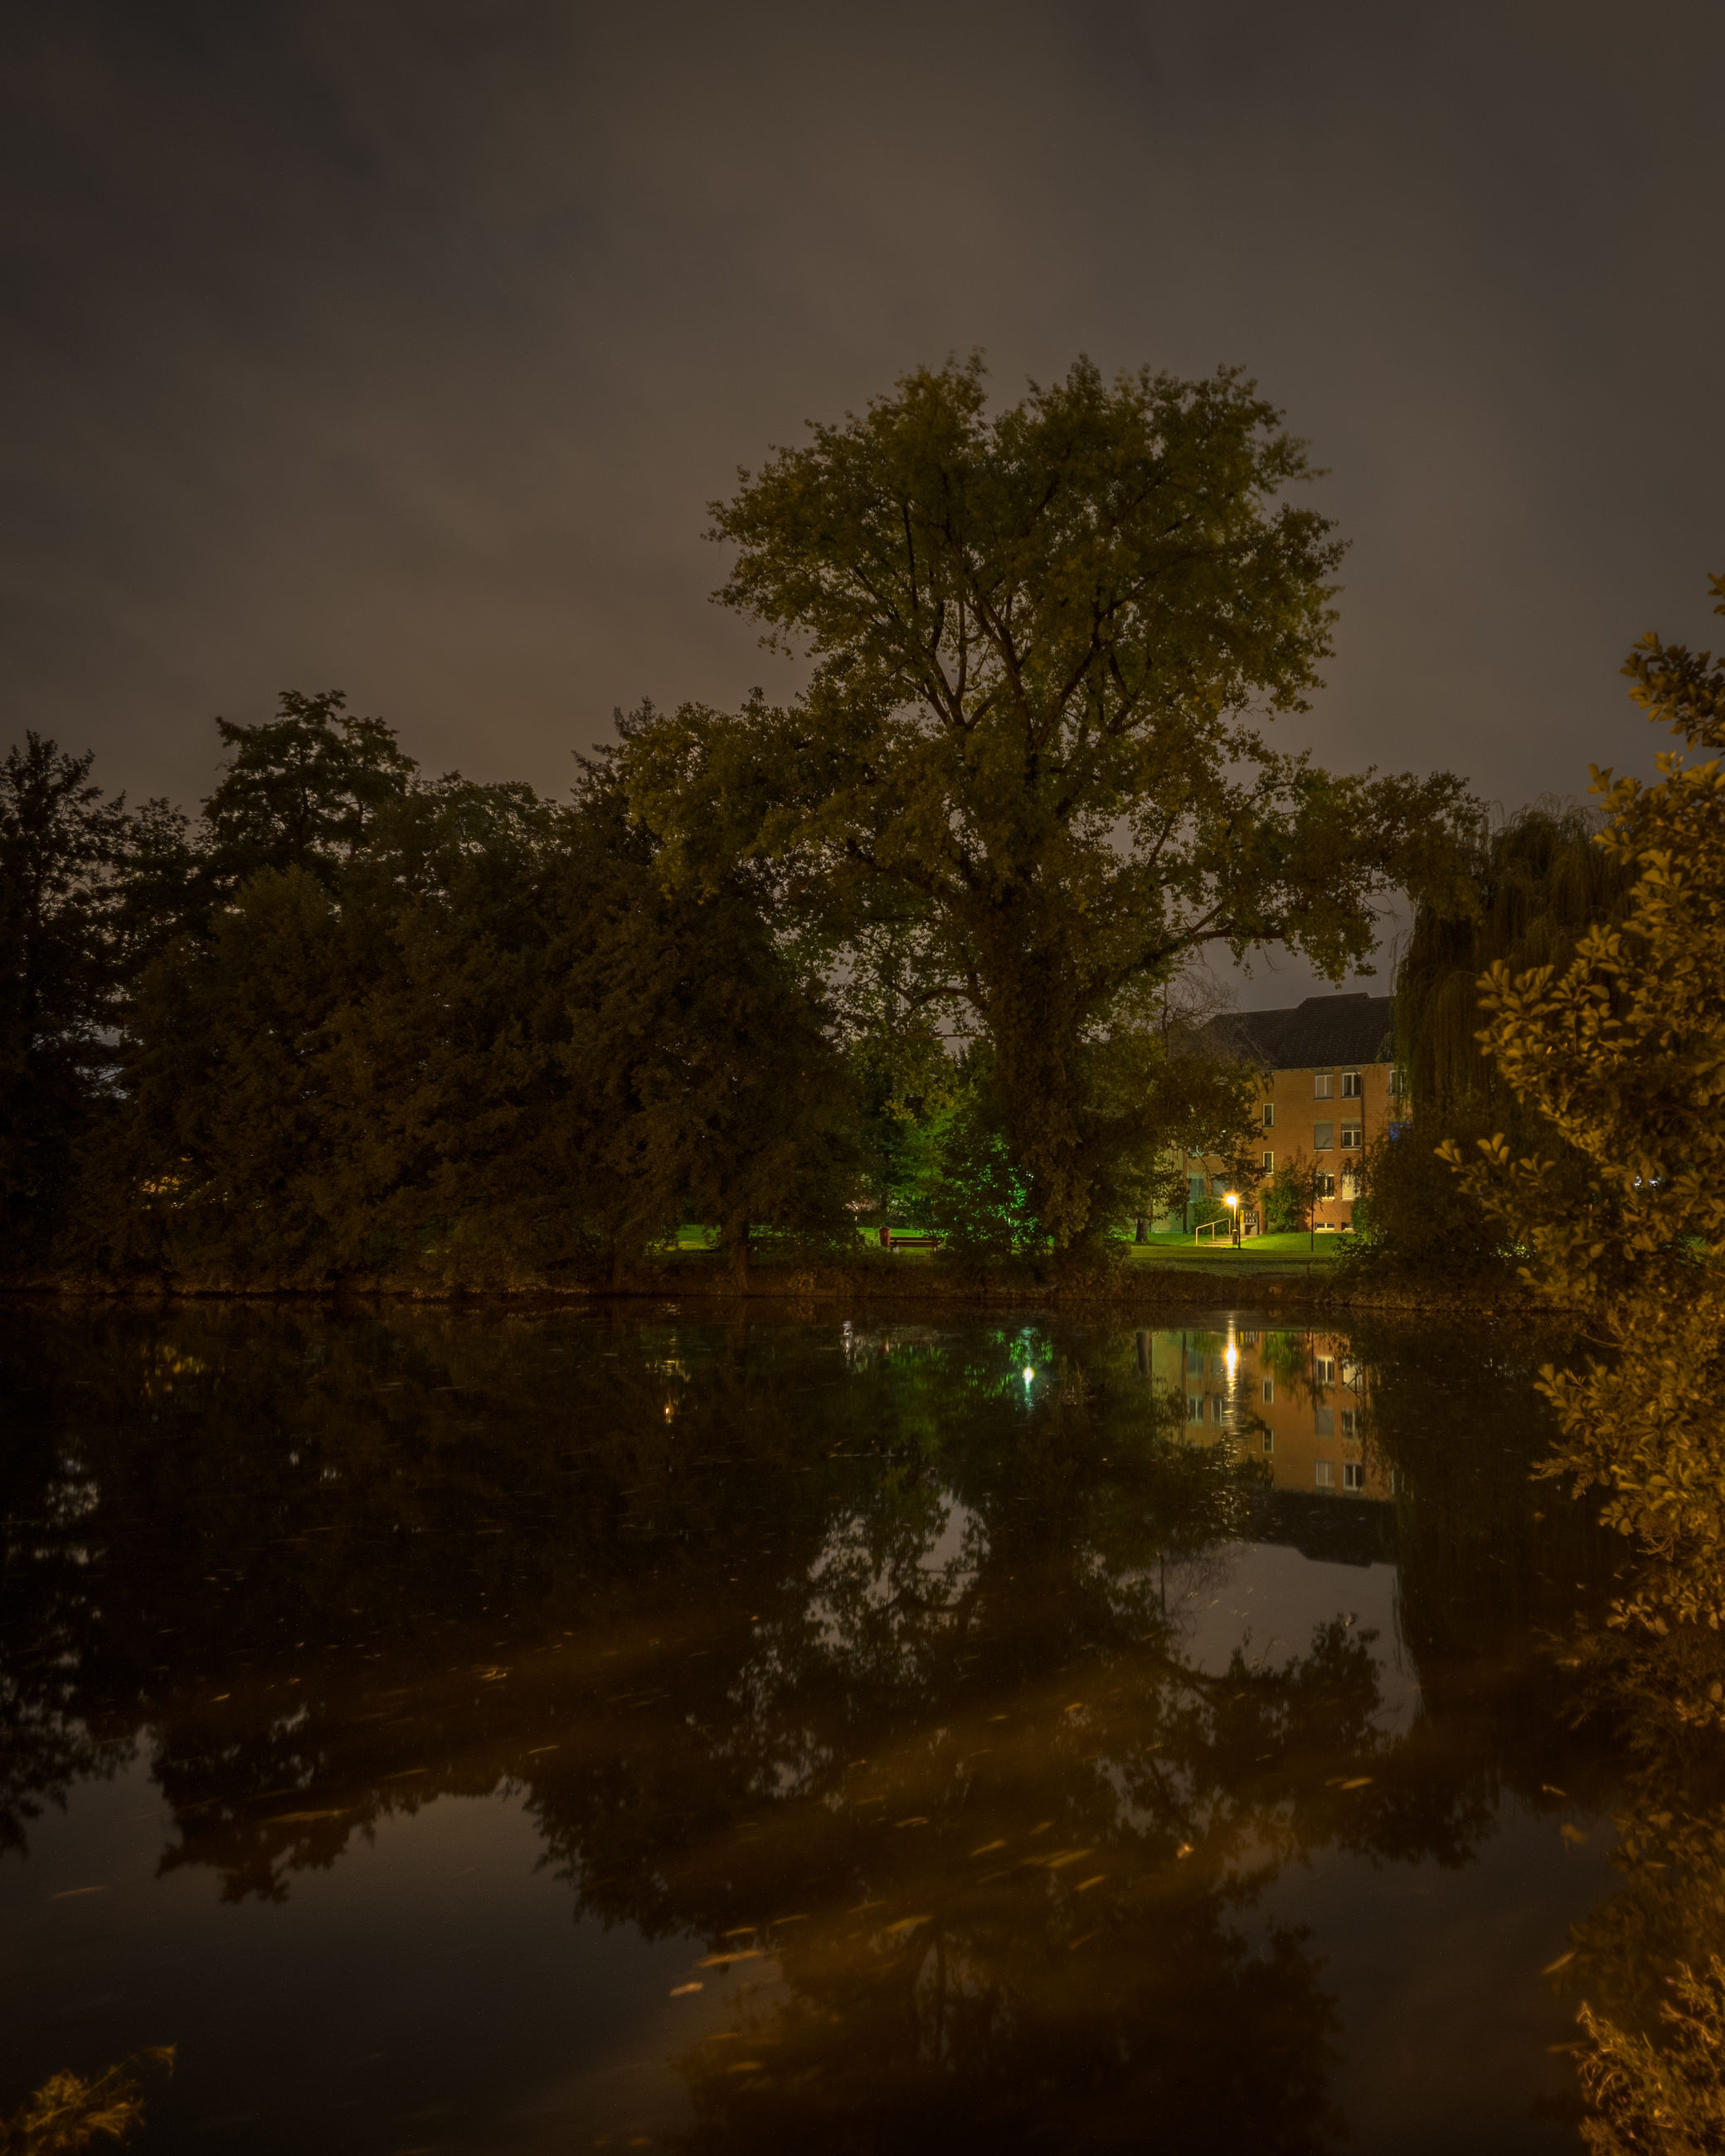 reflection, tree, plant, morning, water, nature, night, sky, leaf, lake, dusk, darkness, autumn, architecture, beauty in nature, no people, light, tranquility, outdoors, environment, scenics - nature, cloud, building, built structure, tranquil scene, building exterior